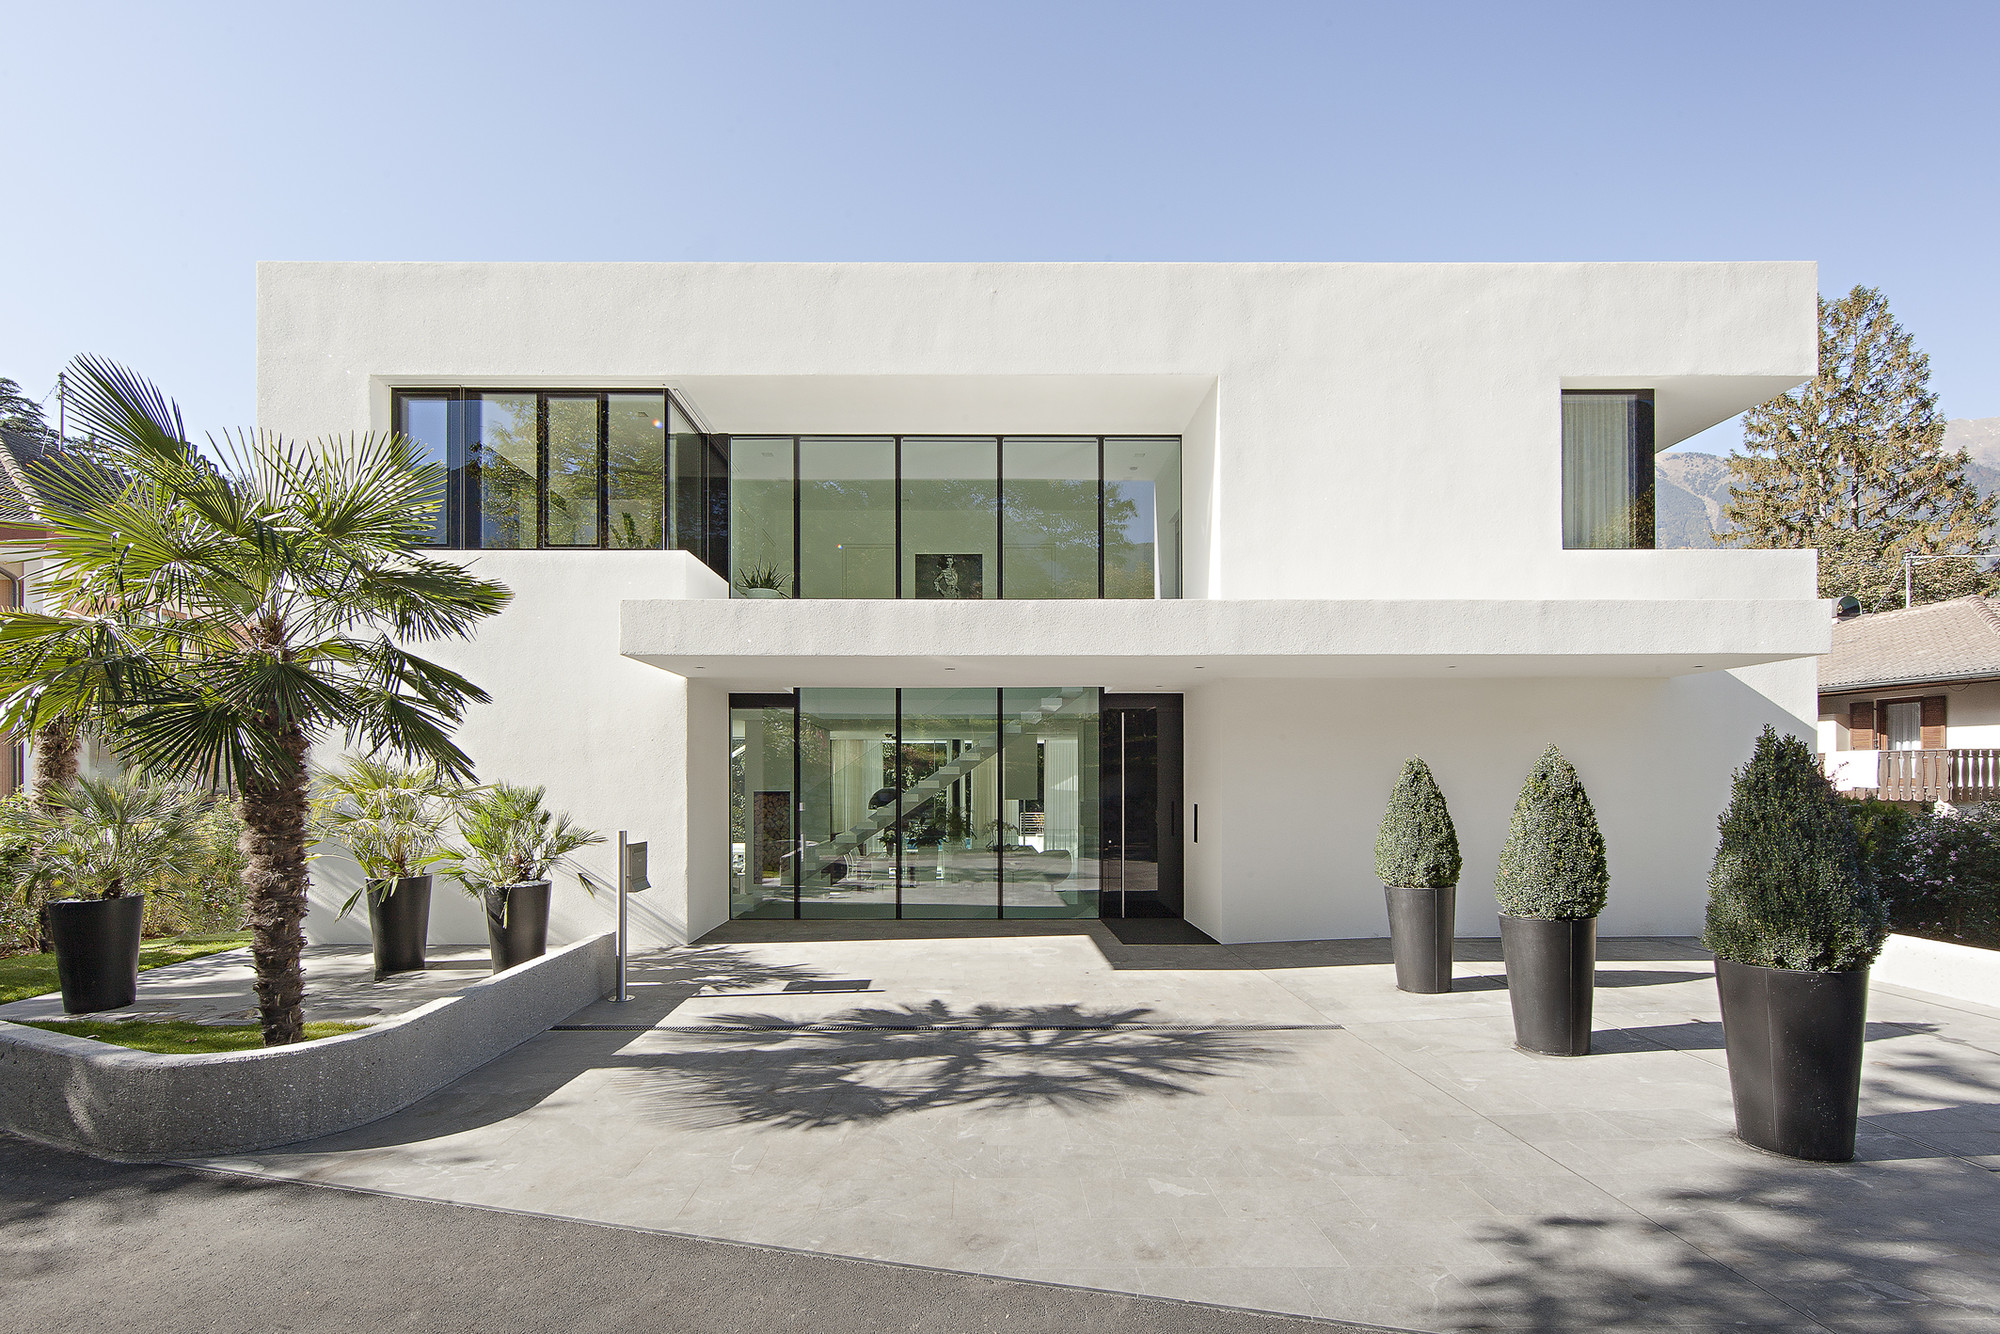 Architectural Design Of Residential Building House M By Monovolume Architecture Design In Meran Italy